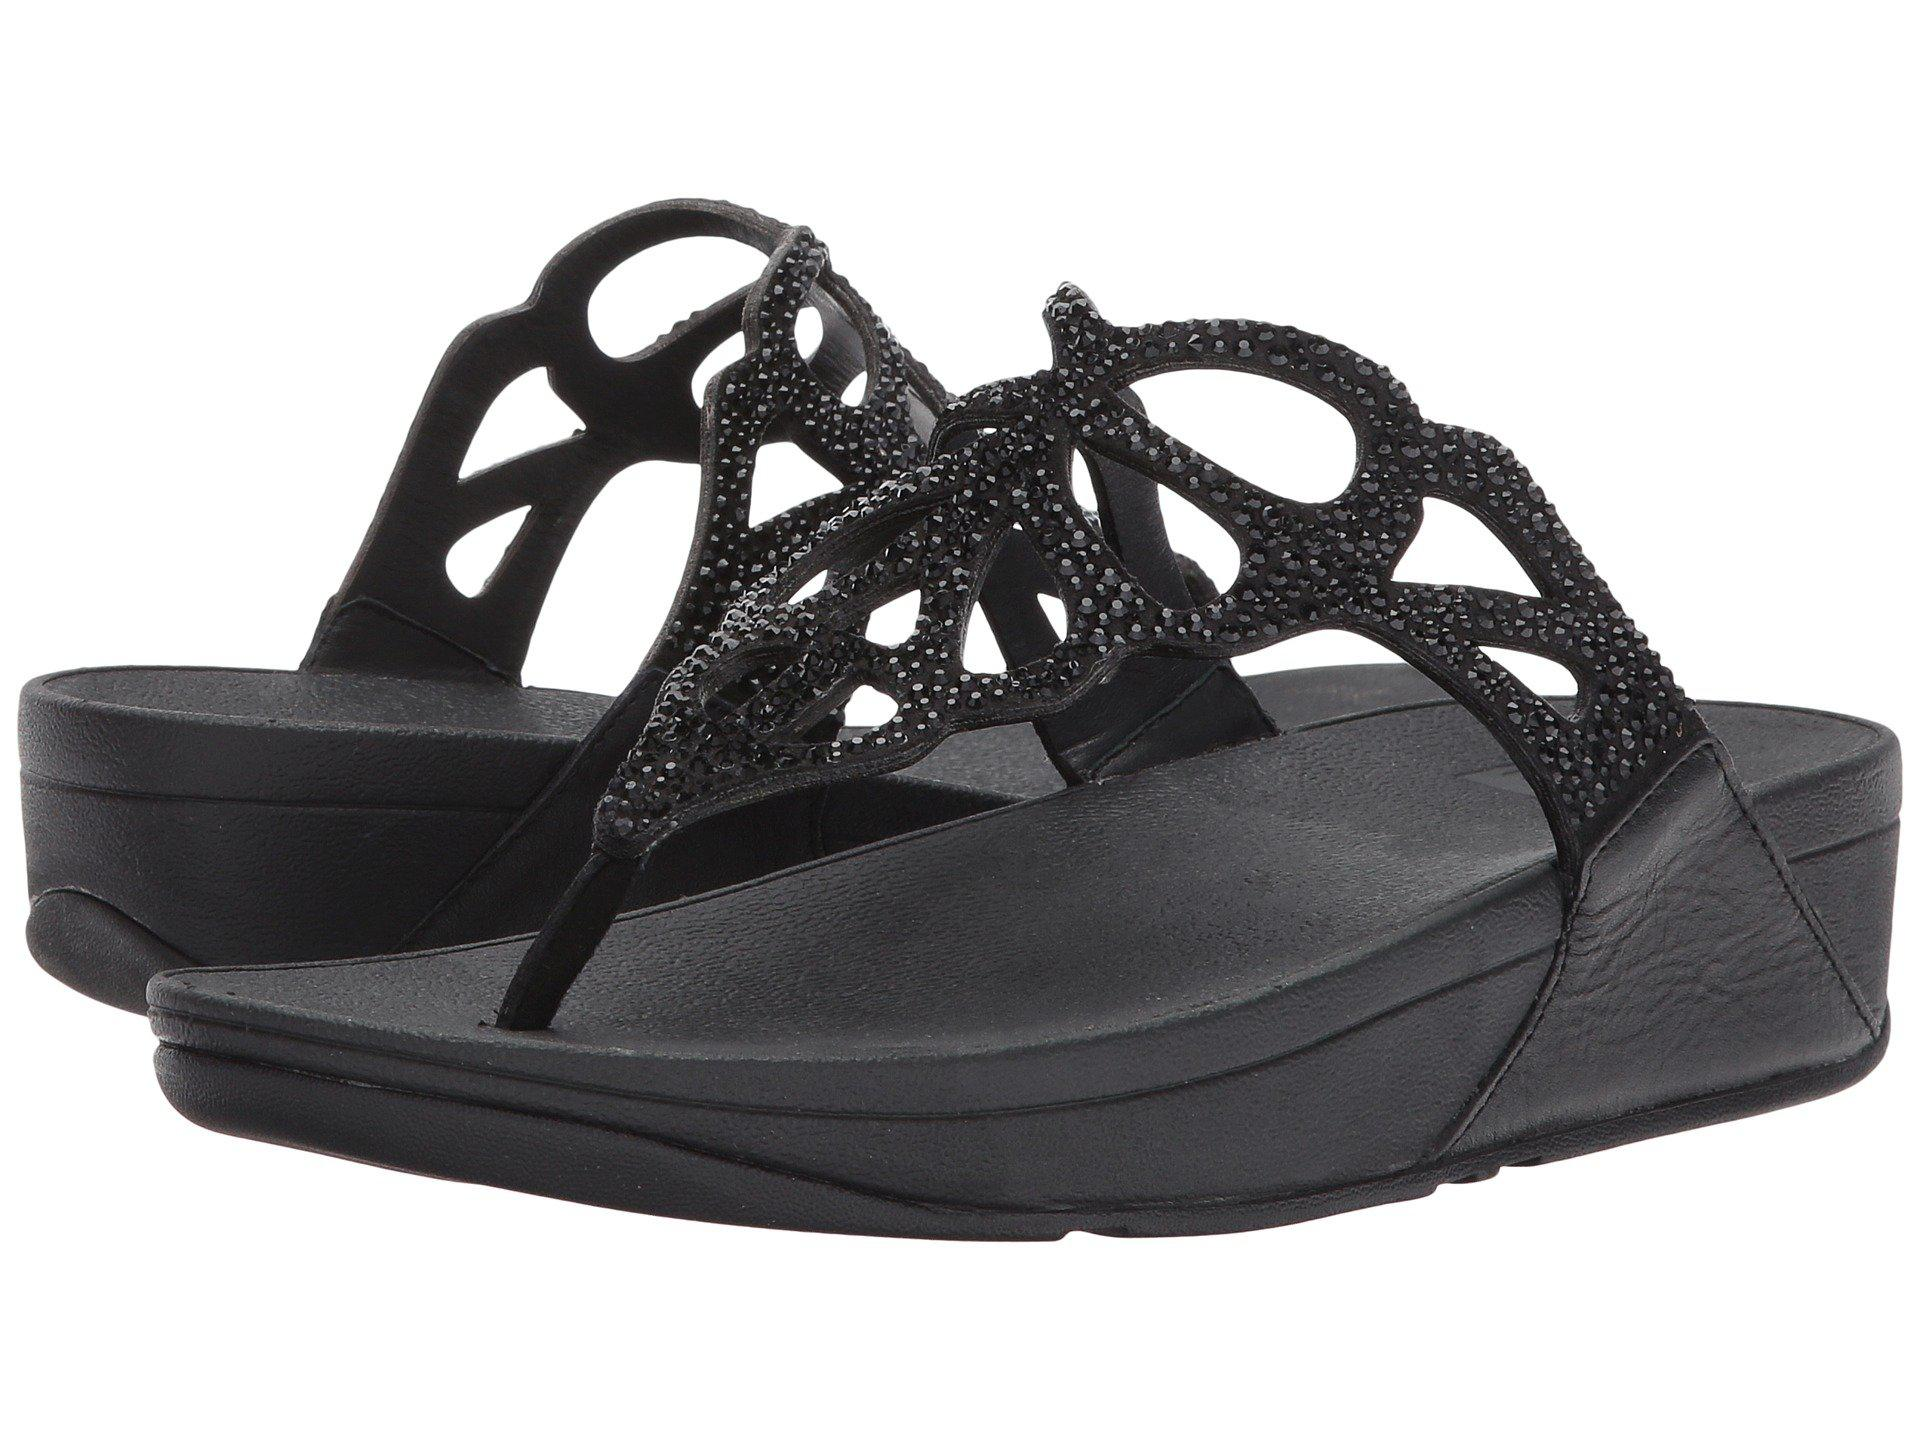 a04bac690 Lyst - Fitflop Bumble Crystal Toe Post (black) Women s Shoes in Black